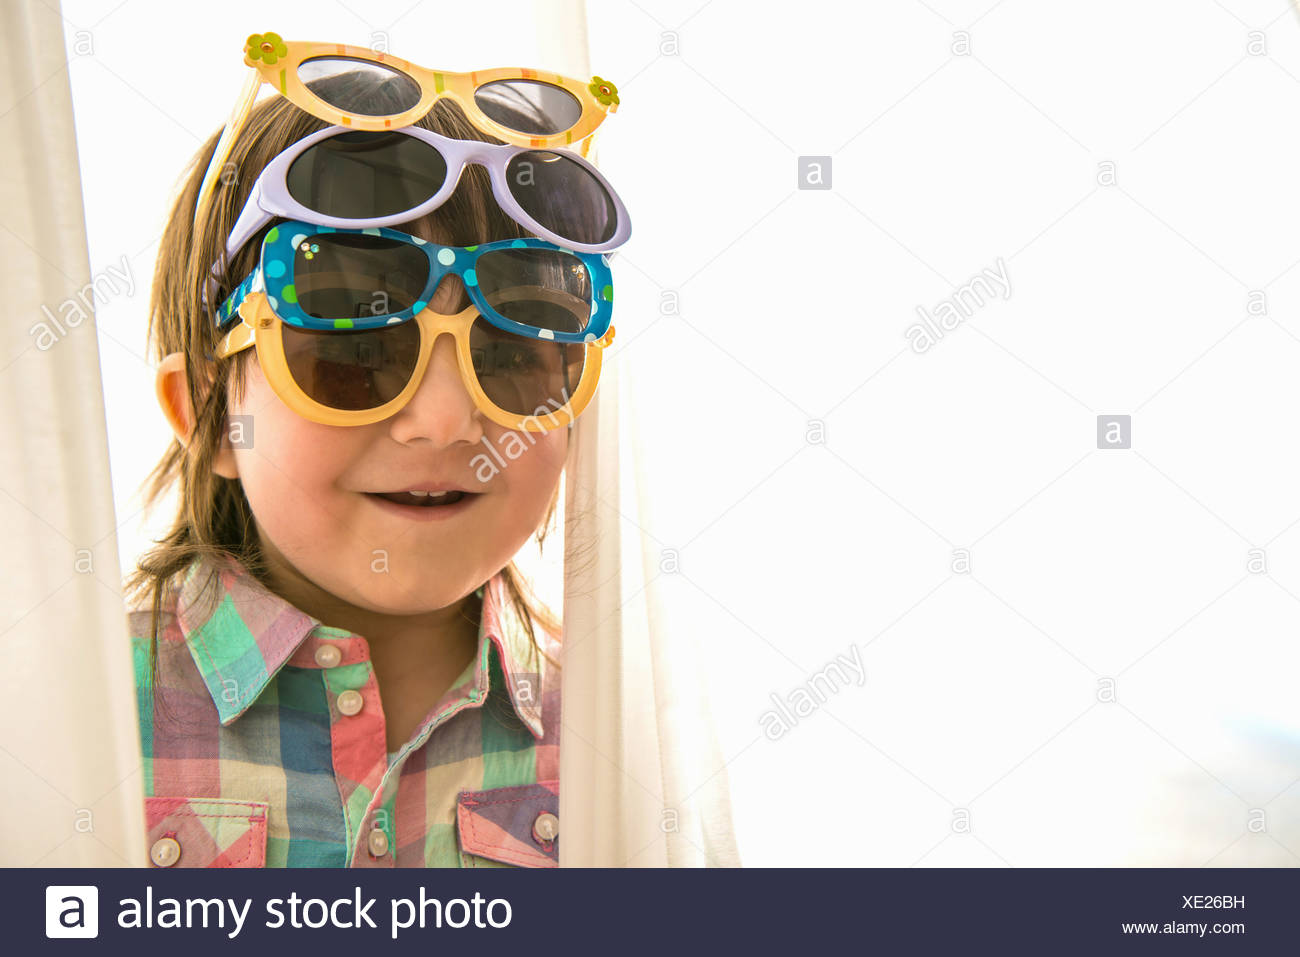 Girl wearing quatre paires de lunettes de soleil Photo Stock